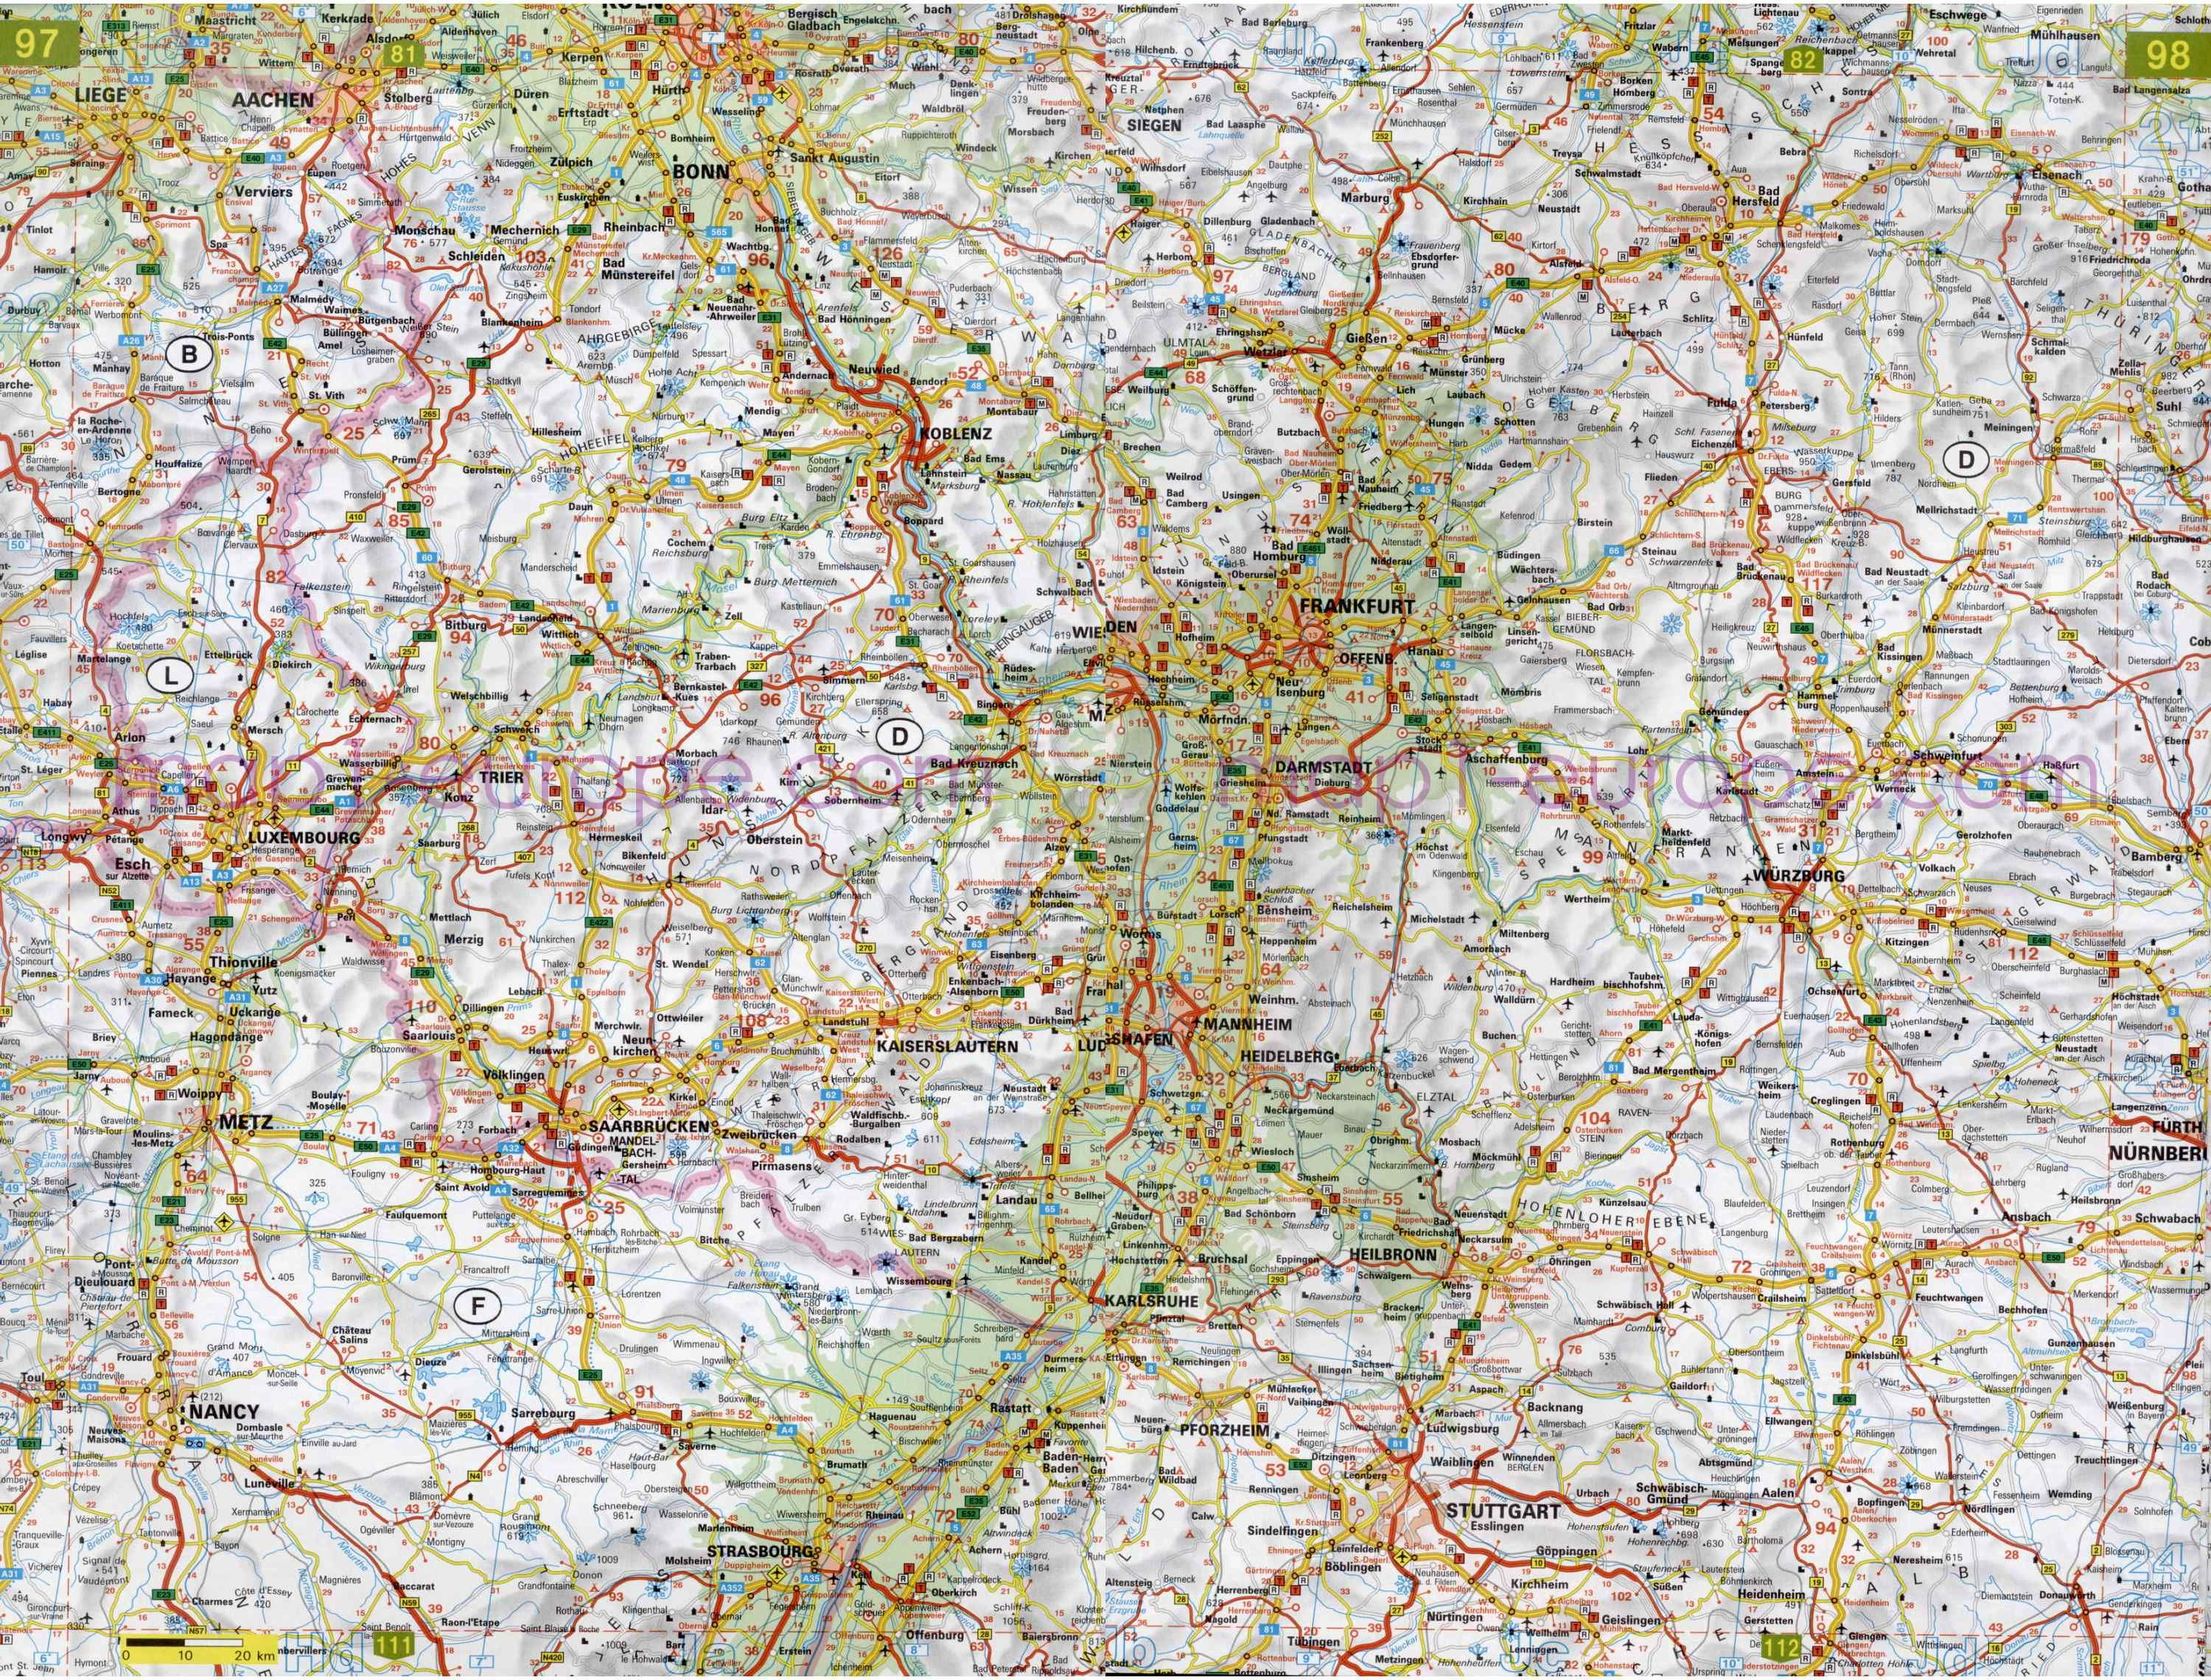 Map Of Europe With Scale.Map Of Europe In English Detailed Road Maps Of Europe Scale 1cm